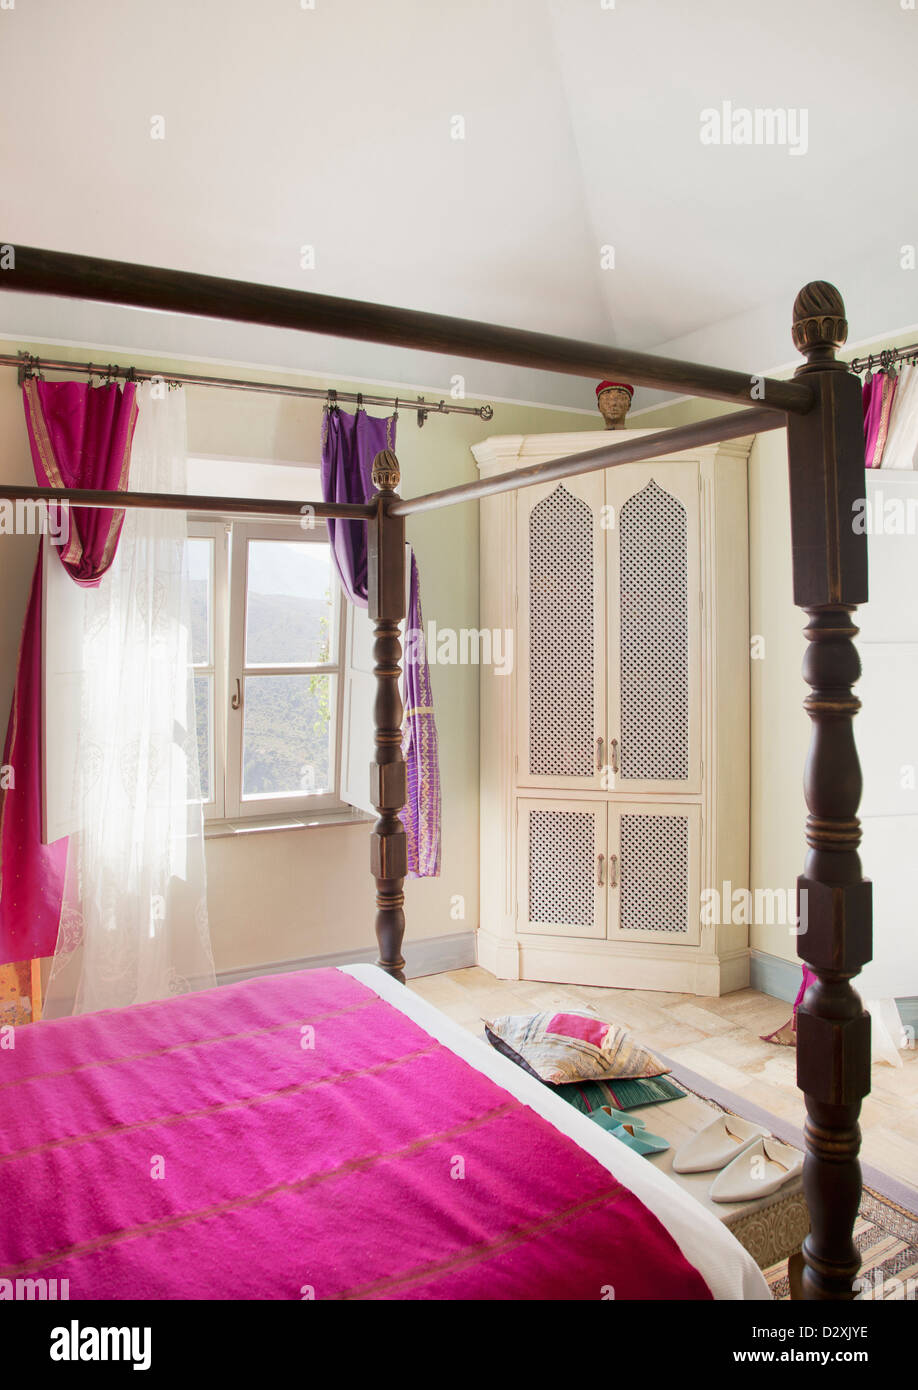 Four poster bed with purple bedding in bedroom - Stock Image